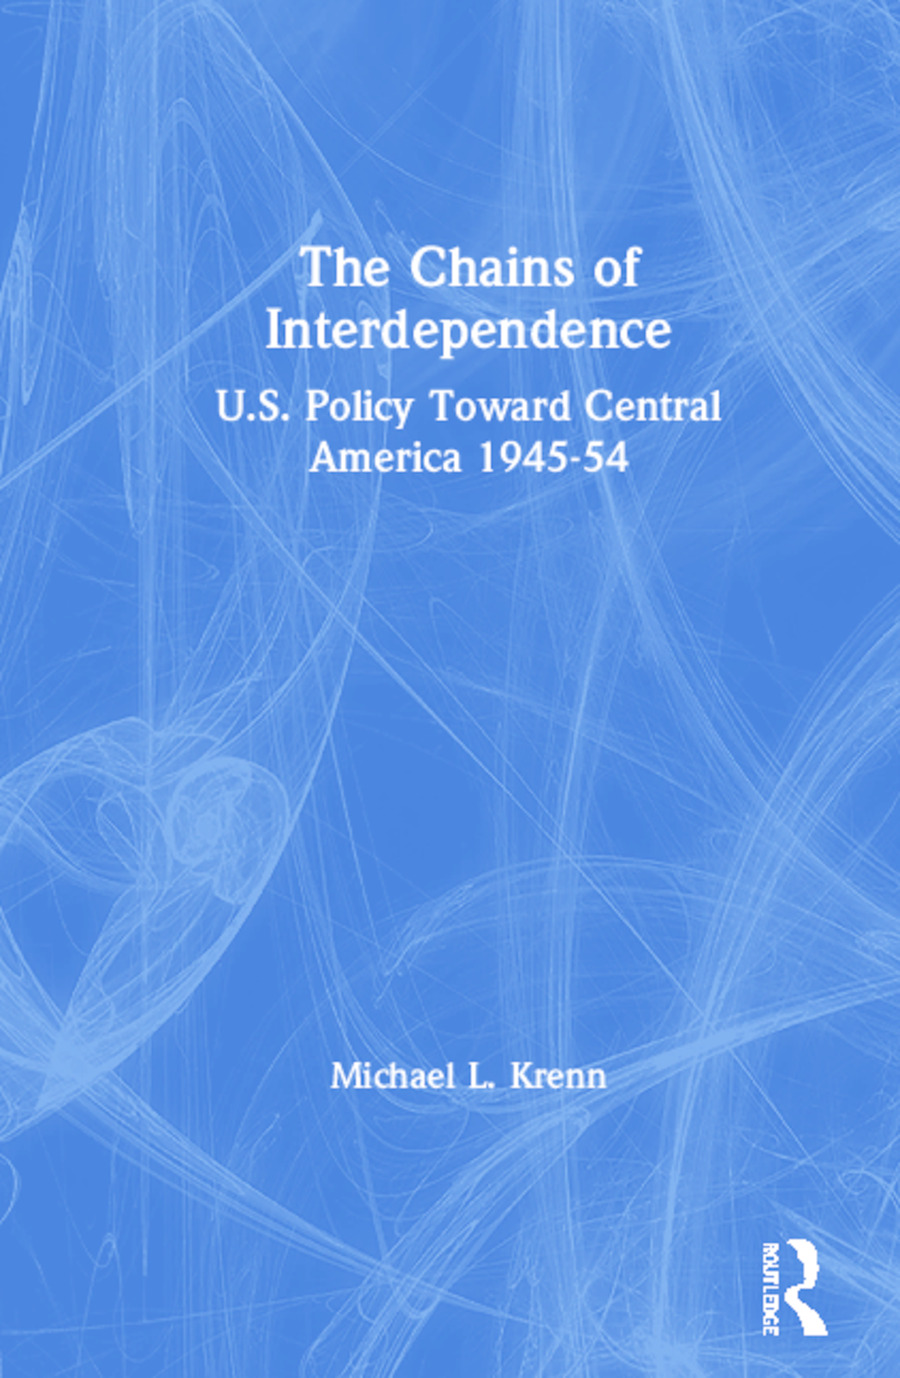 The Chains of Interdependence: U.S. Policy Toward Central America, 1945-54: U.S. Policy Toward Central America, 1945-54, 1st Edition (Hardback) book cover